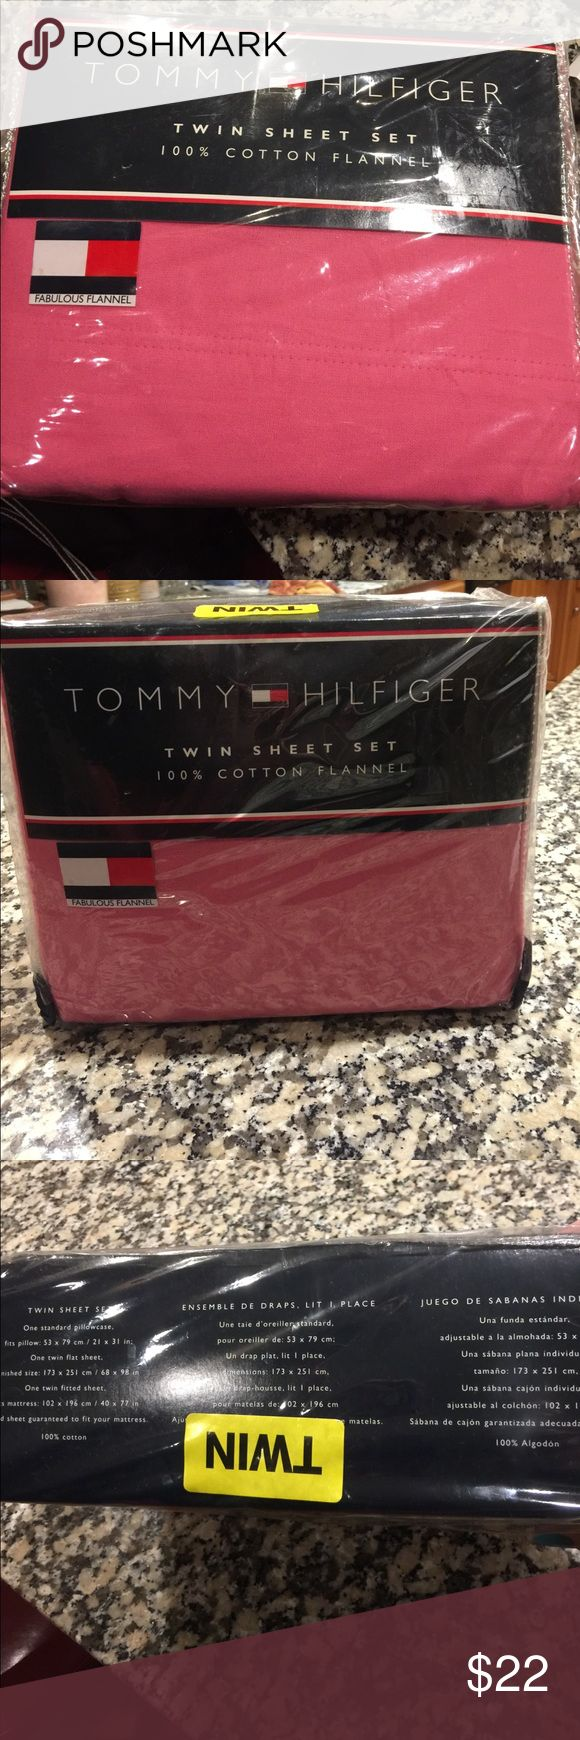 "Tommy Hilfiger Twin sheets NWOT 100% cotton flannel cotton twin sheet set, Pink One standard pillowcase, fits pillow 21 x 31"", one twin flat sheet 68 x 98"", one twin fitted sheet 40 x 77"" Tommy Hilfiger Other"